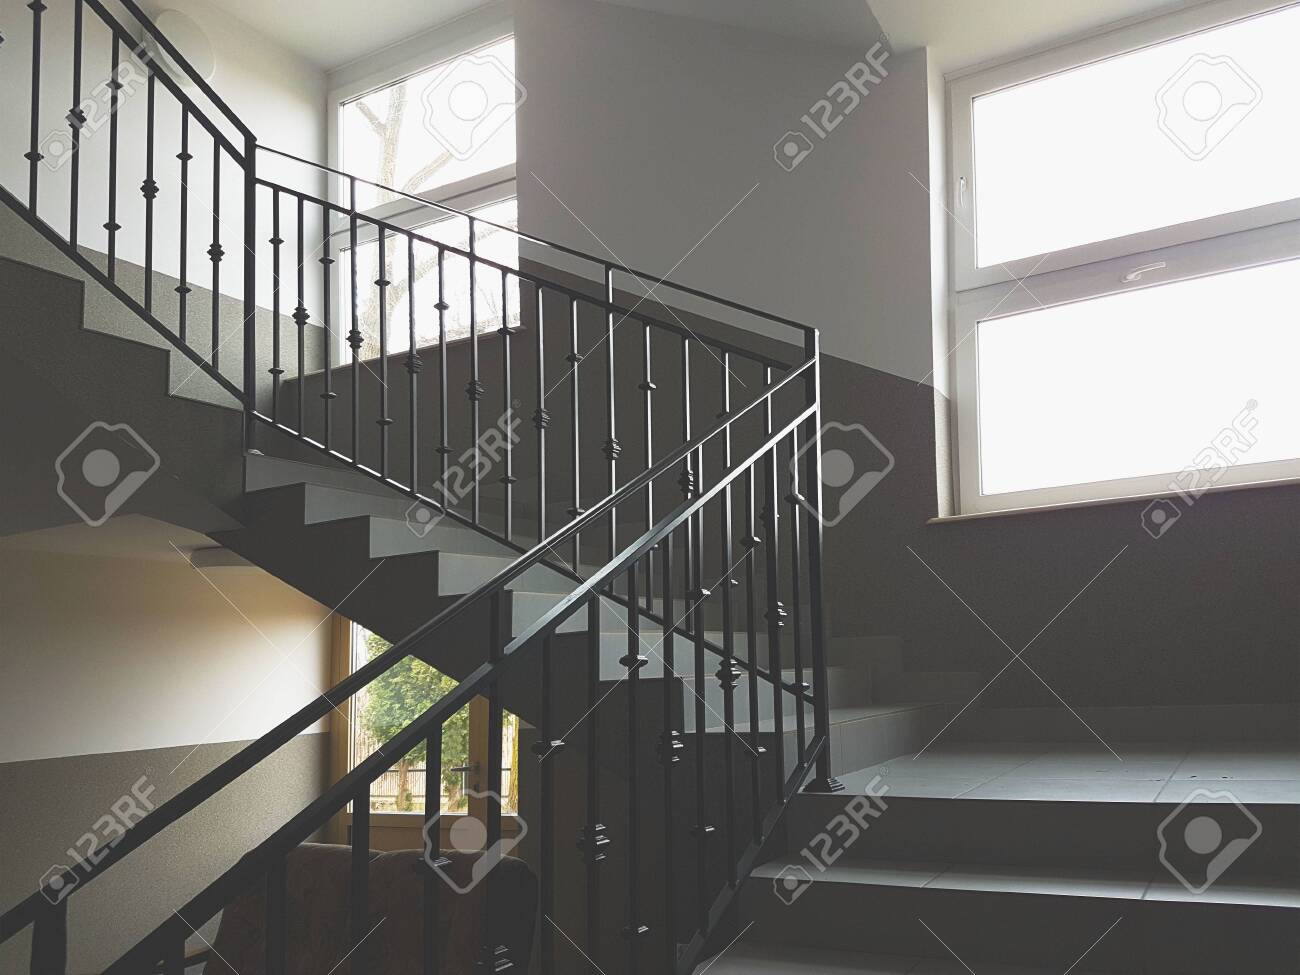 A Staircase With Forged Cast Iron Railings In A Modern Building Stock Photo Picture And Royalty Free Image Image 123366211